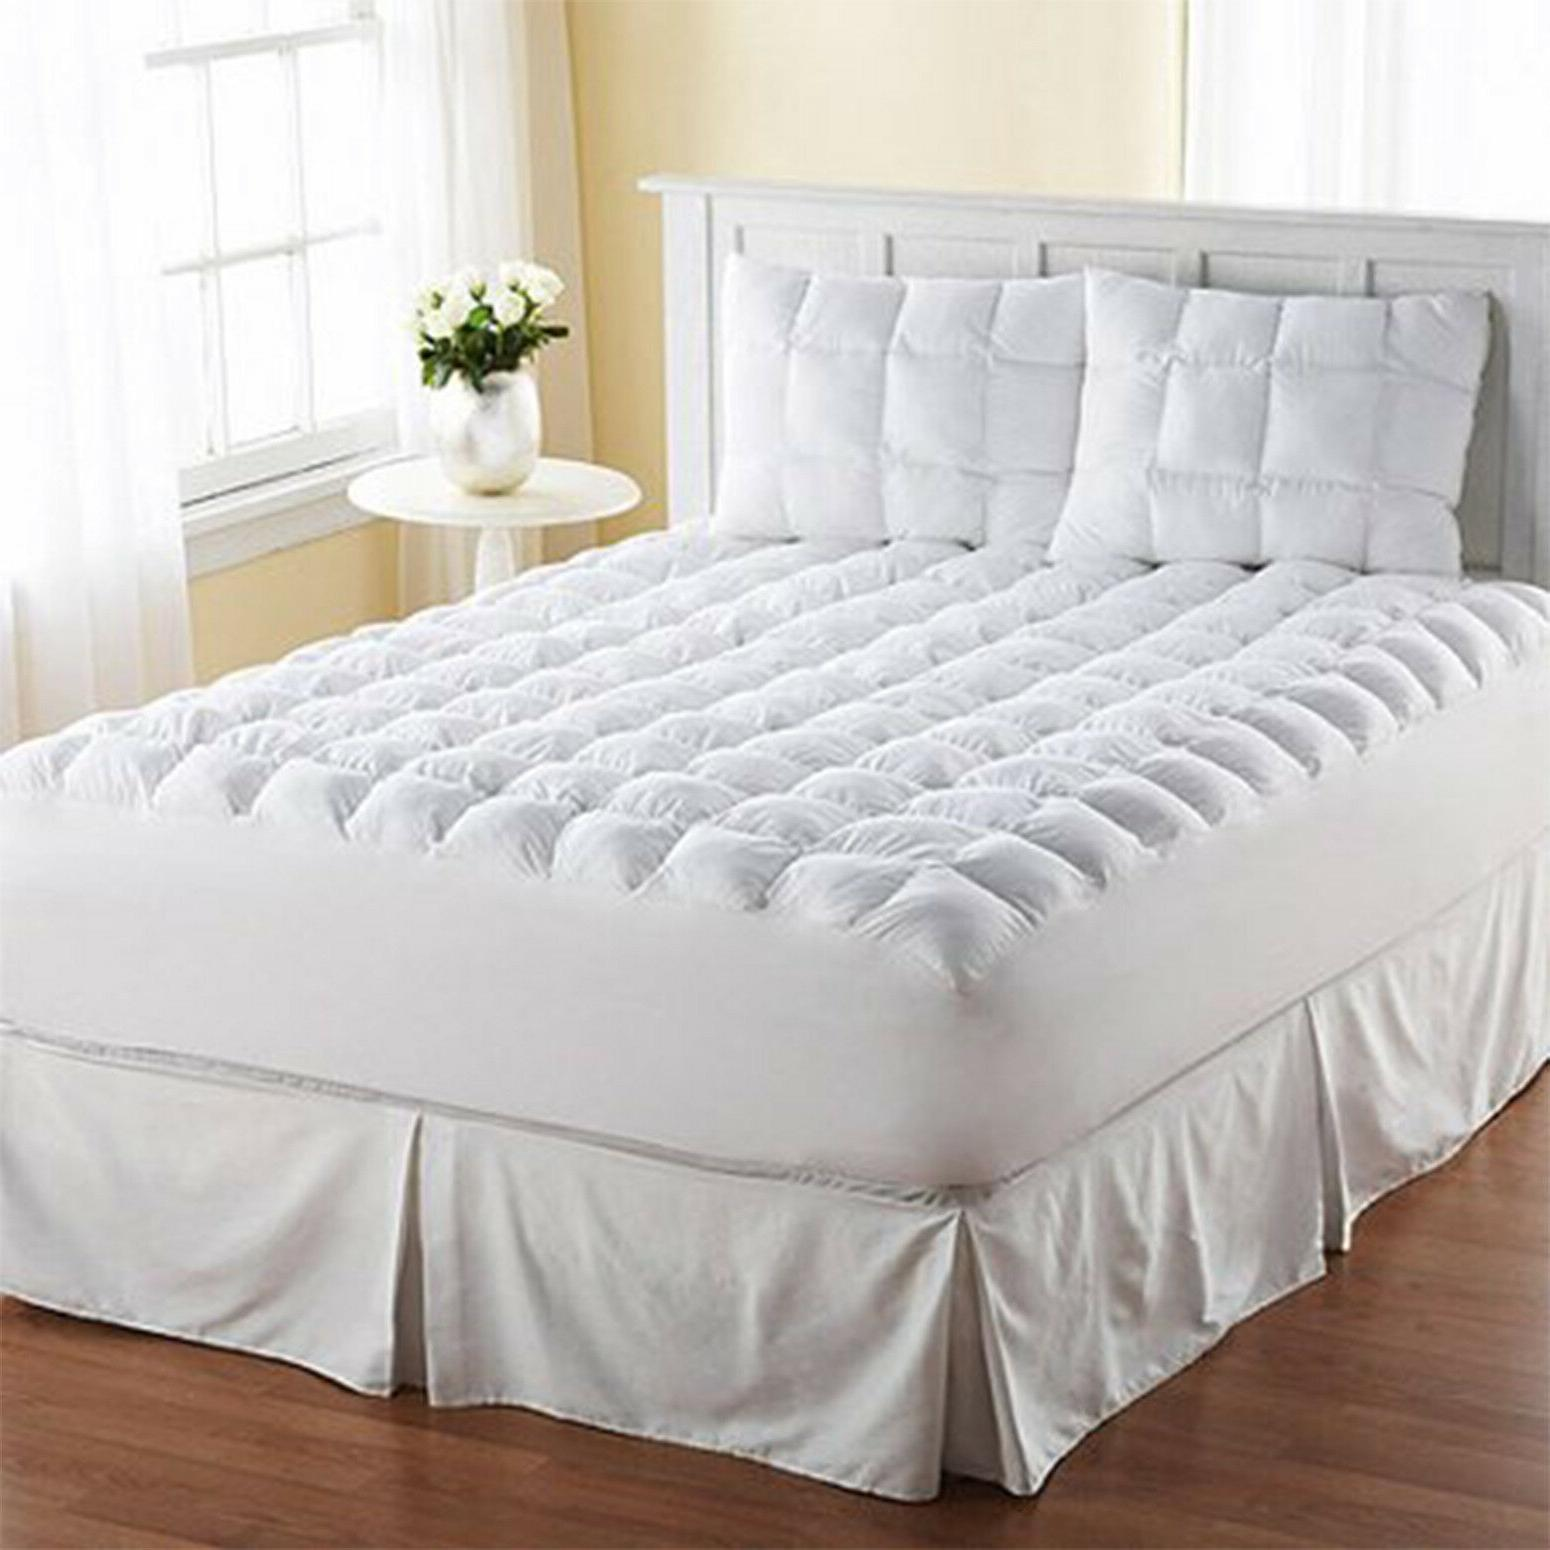 King Size Mattress Pad Cover Pillow Top Topper Thick Cotton